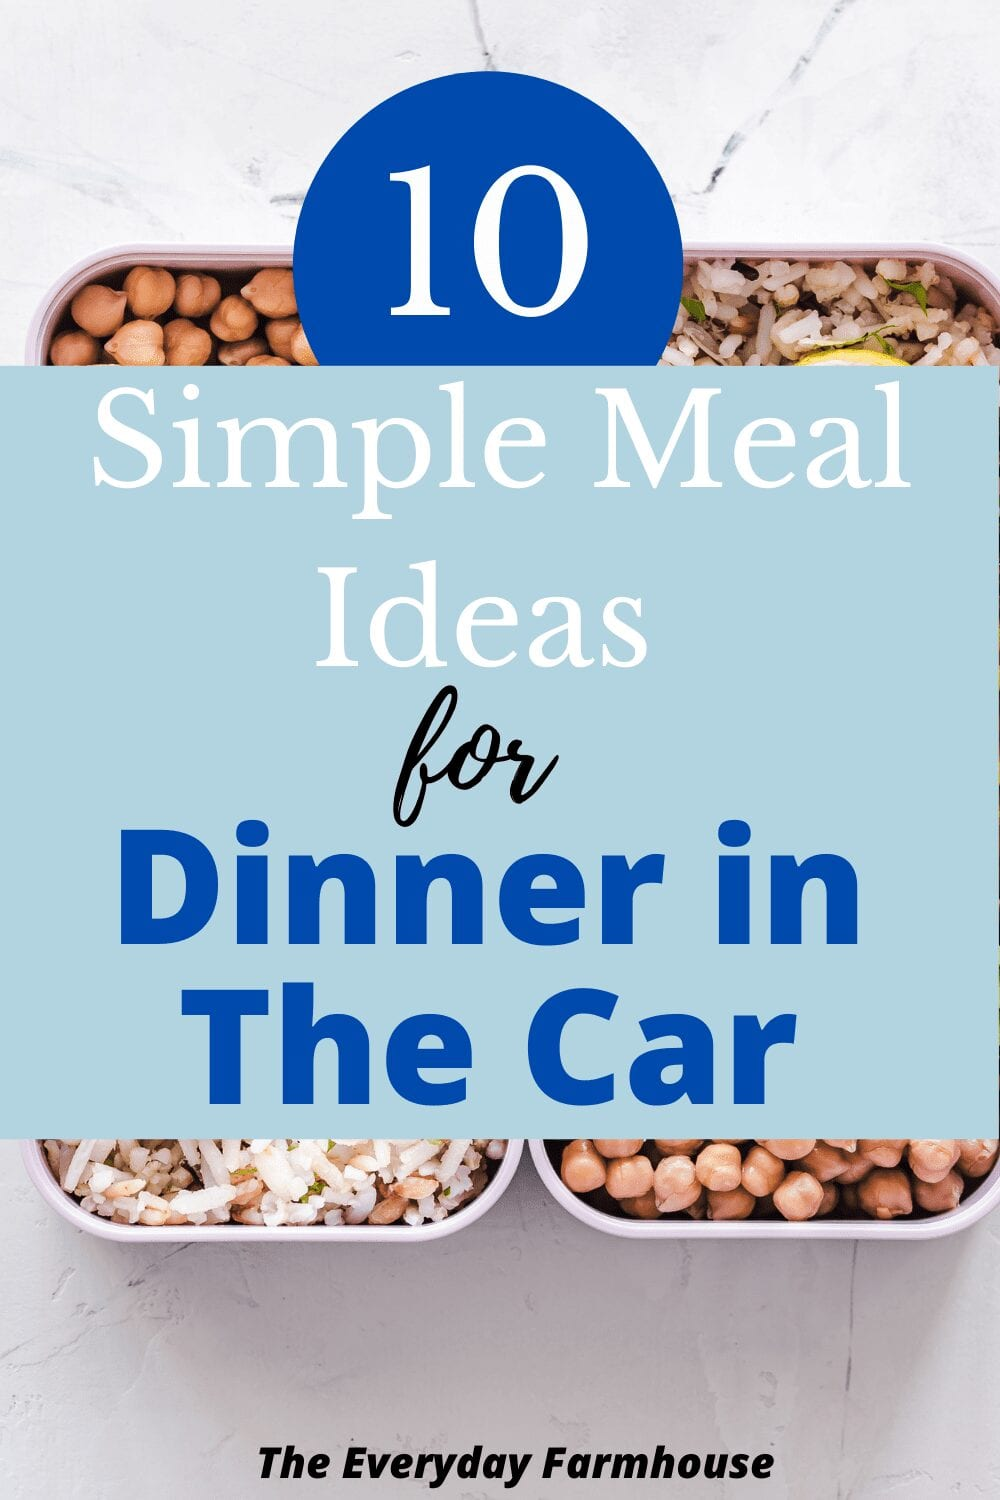 10 Simple Meal Ideas For Dinner in The Car